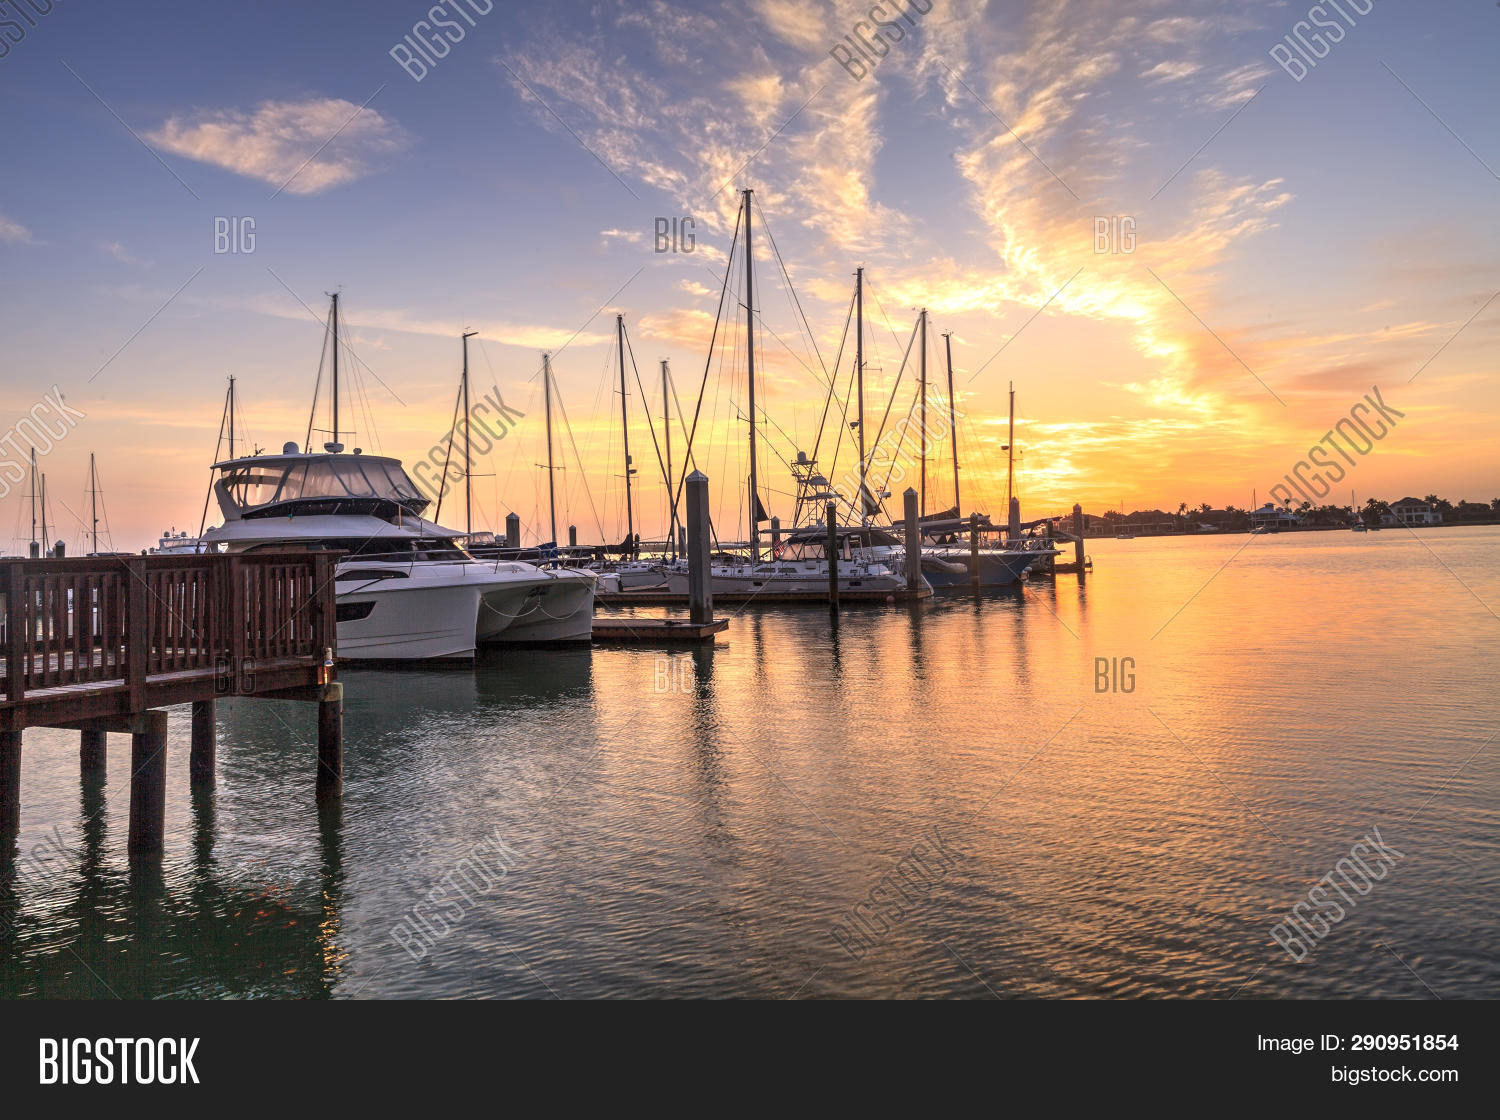 Break Of Dawn Sunrise Over Boats And Sailboats At Factory Bay Marina In Marco Island